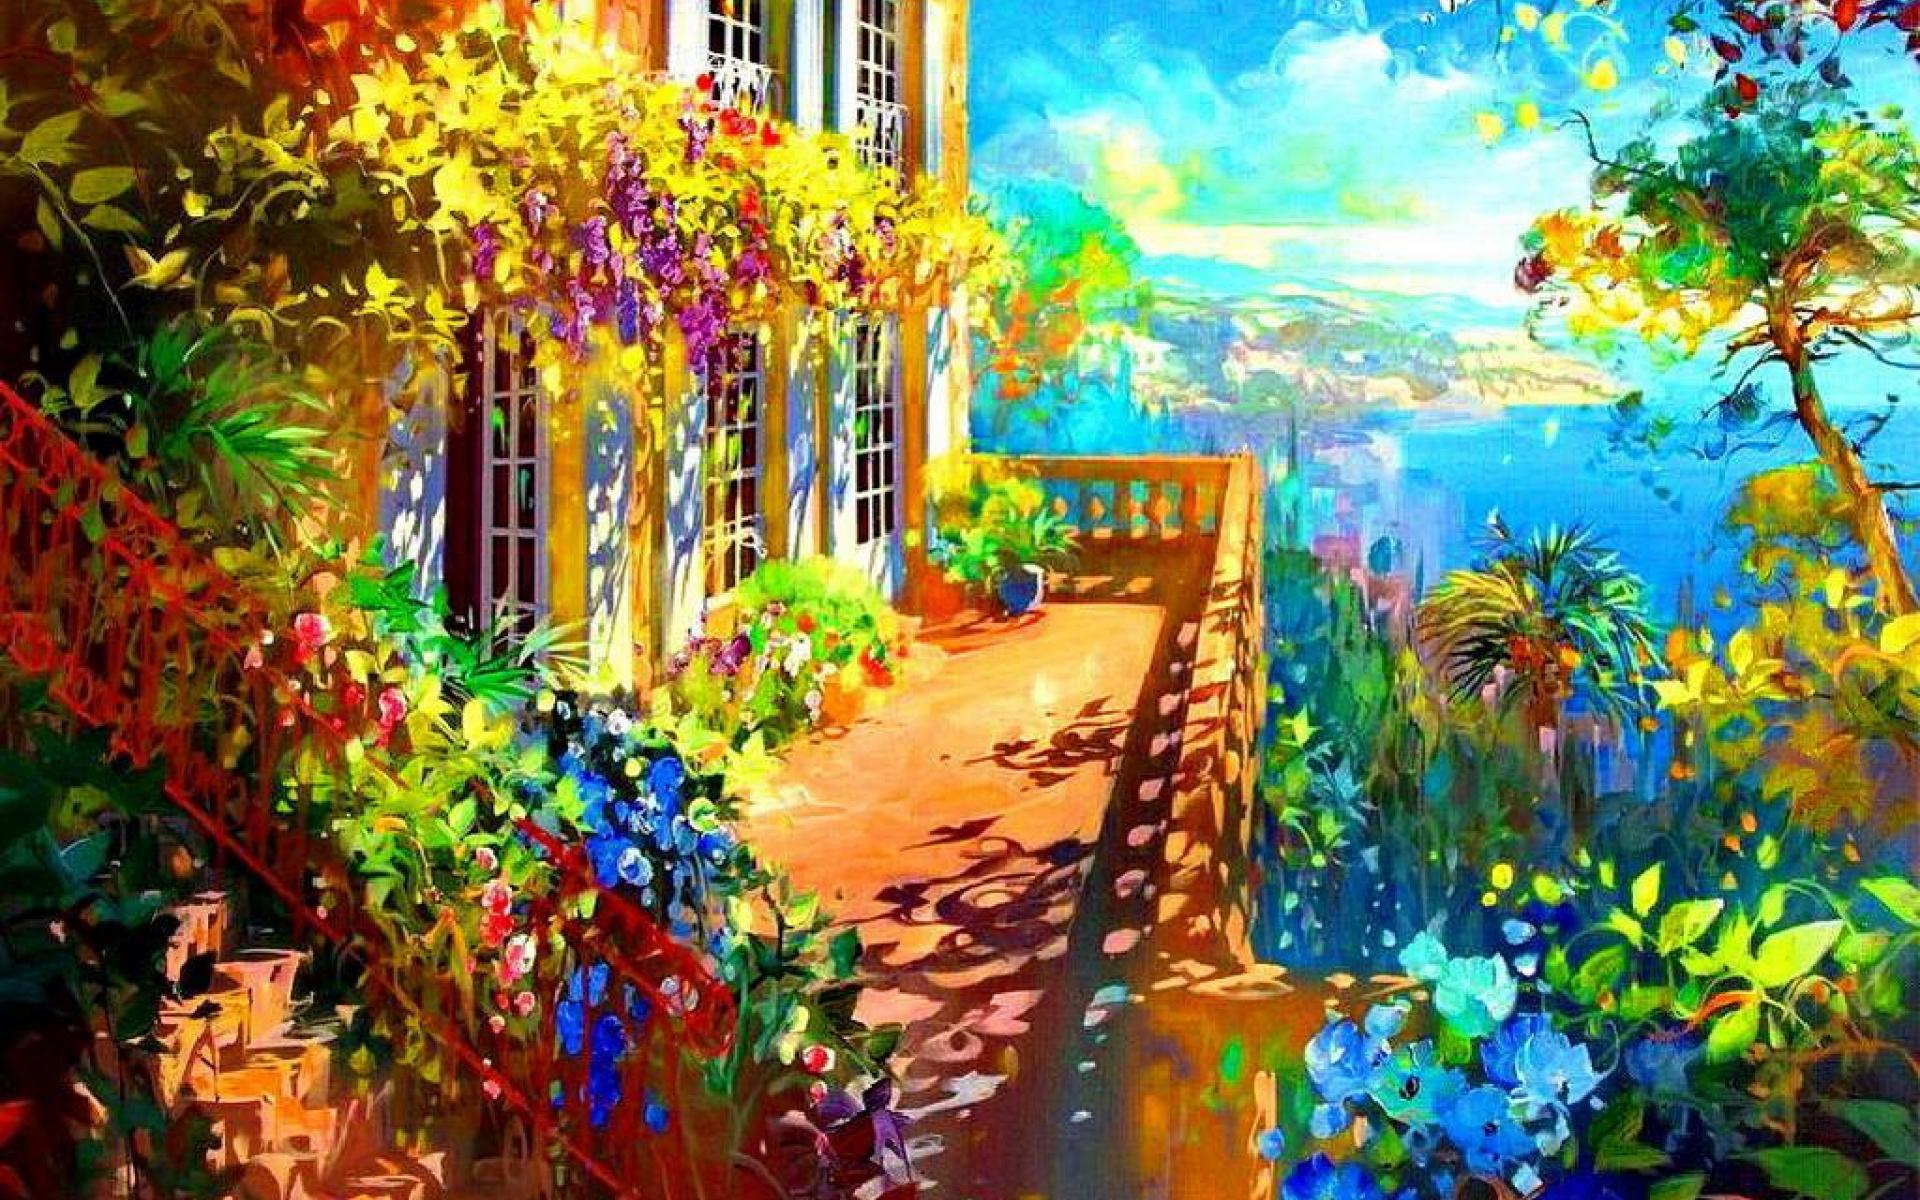 Fall Lilly Pulitzer Wallpaper Water Leaf Autumn Nature Wallpaper 1920x1080 32410